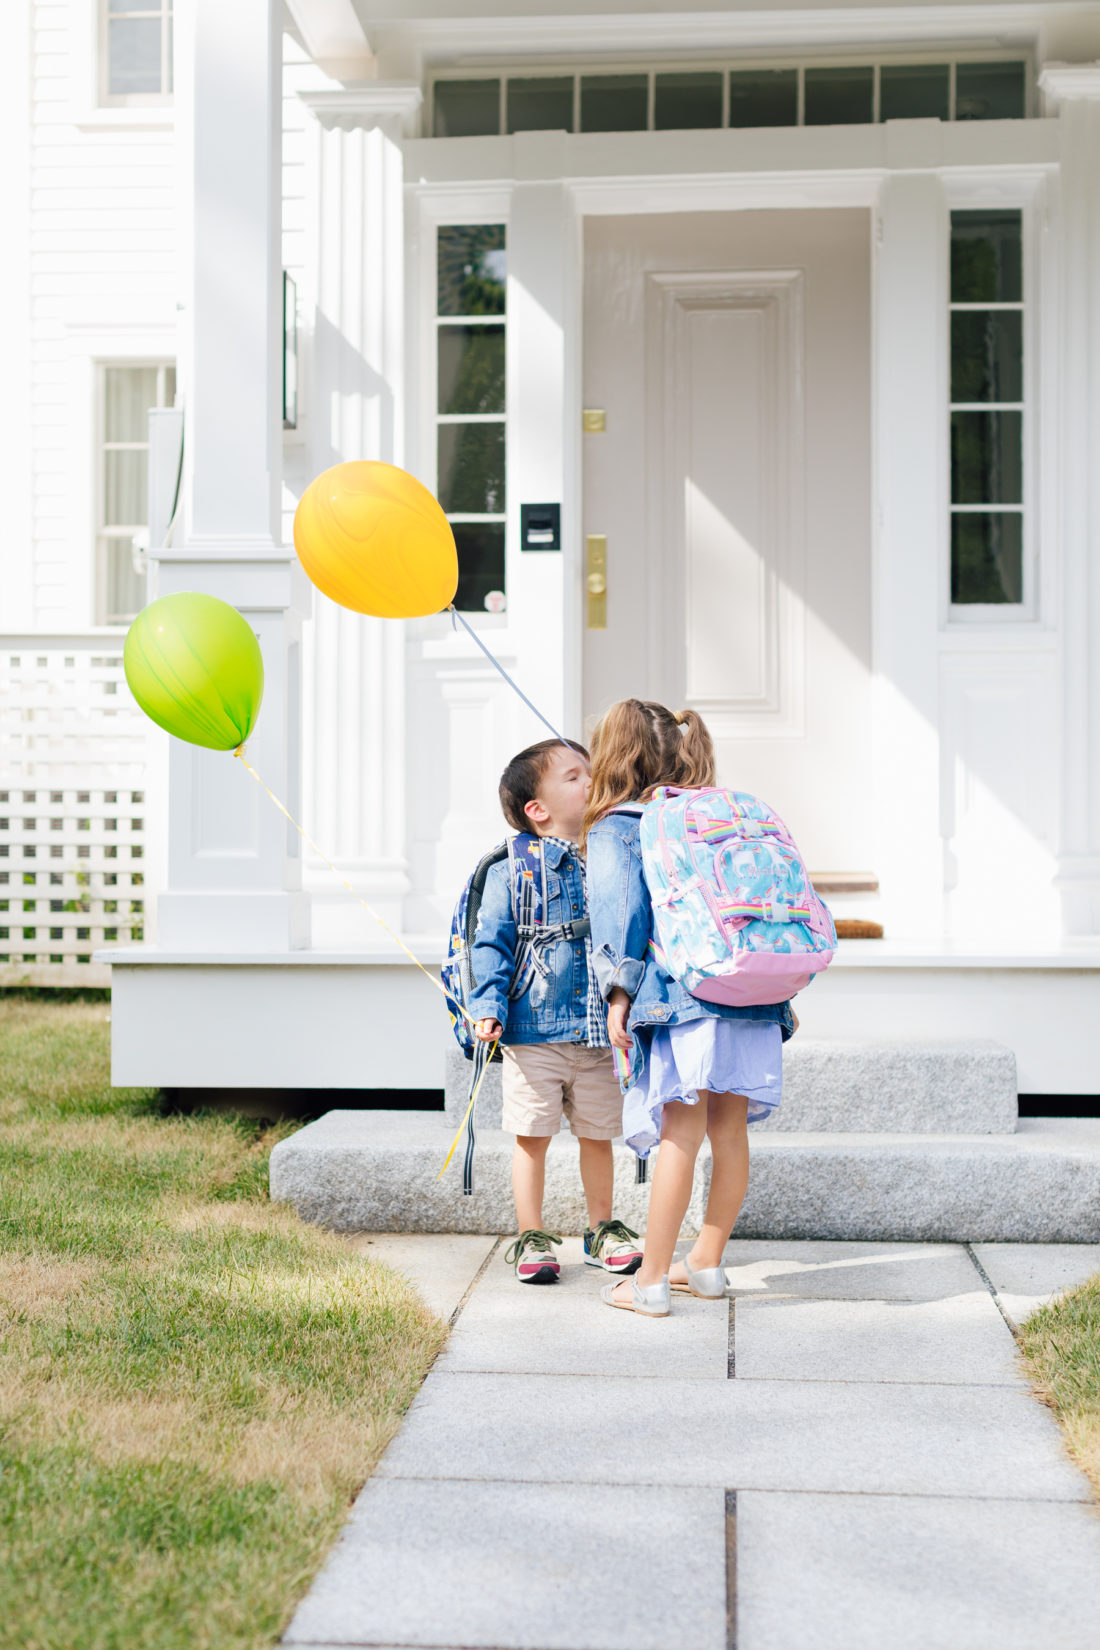 Marlowe Martino kisses her brother Major in their back to school backpacks